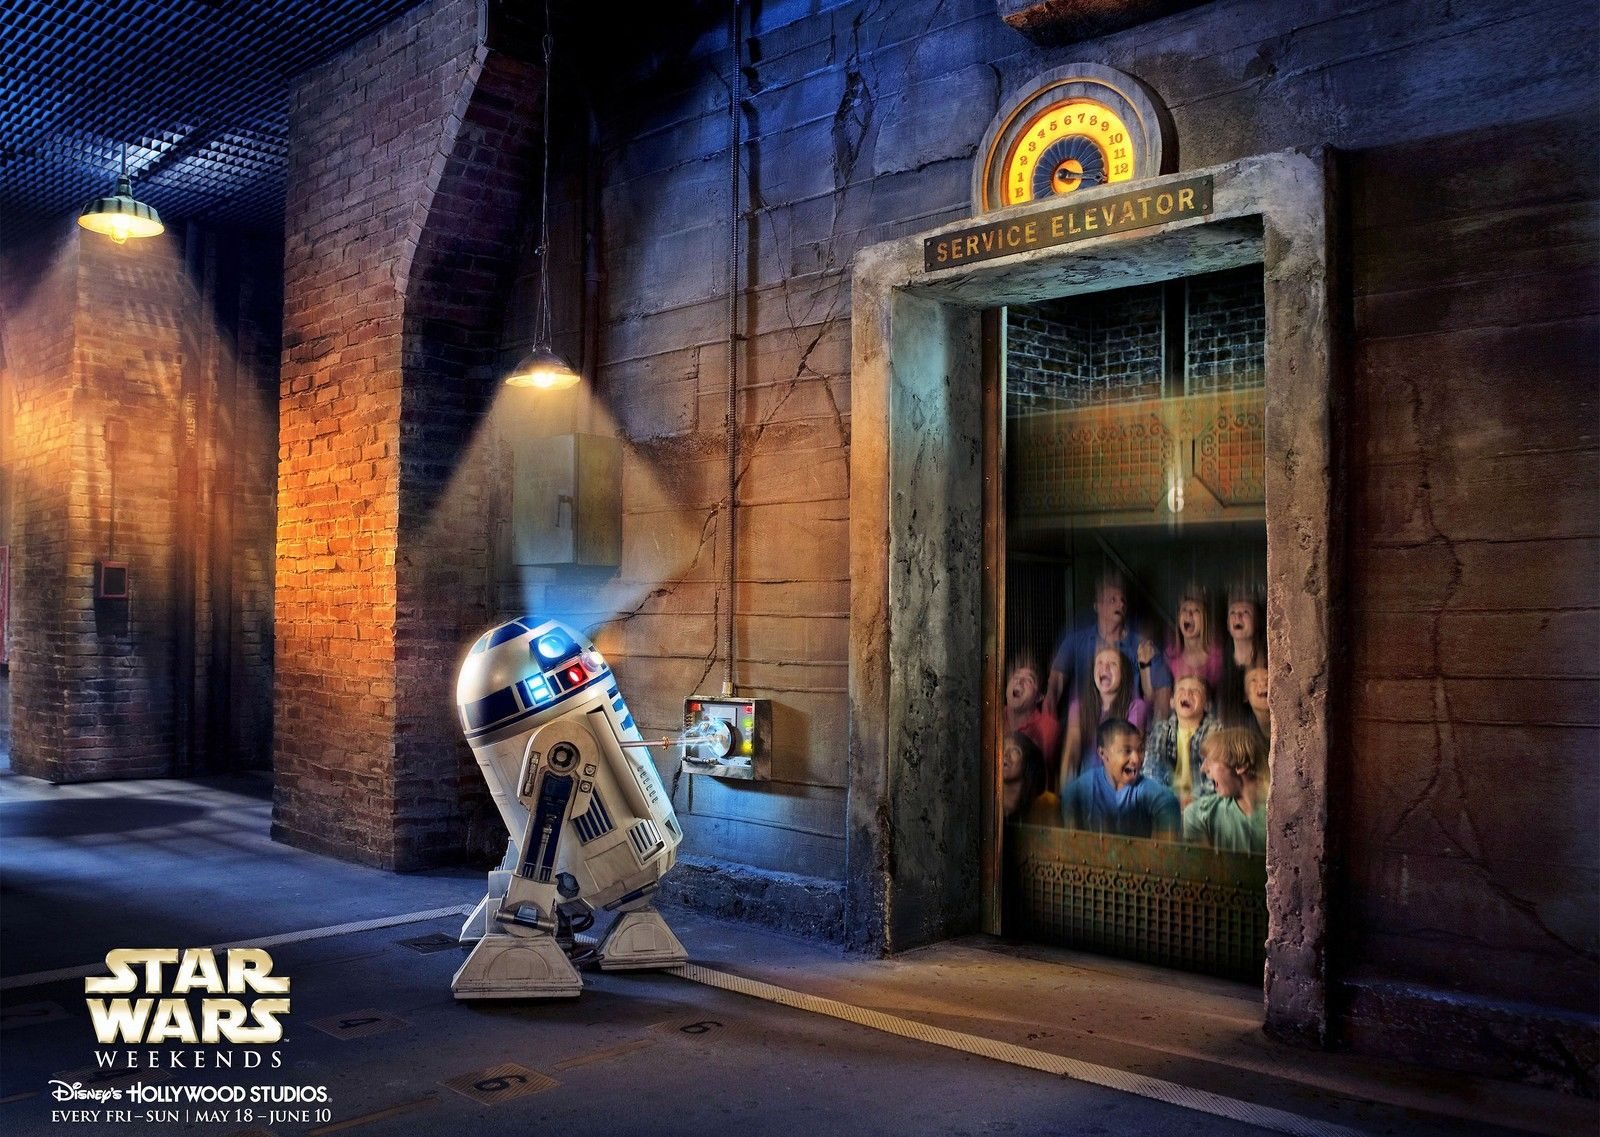 R2-D2 on the Tower of Terror